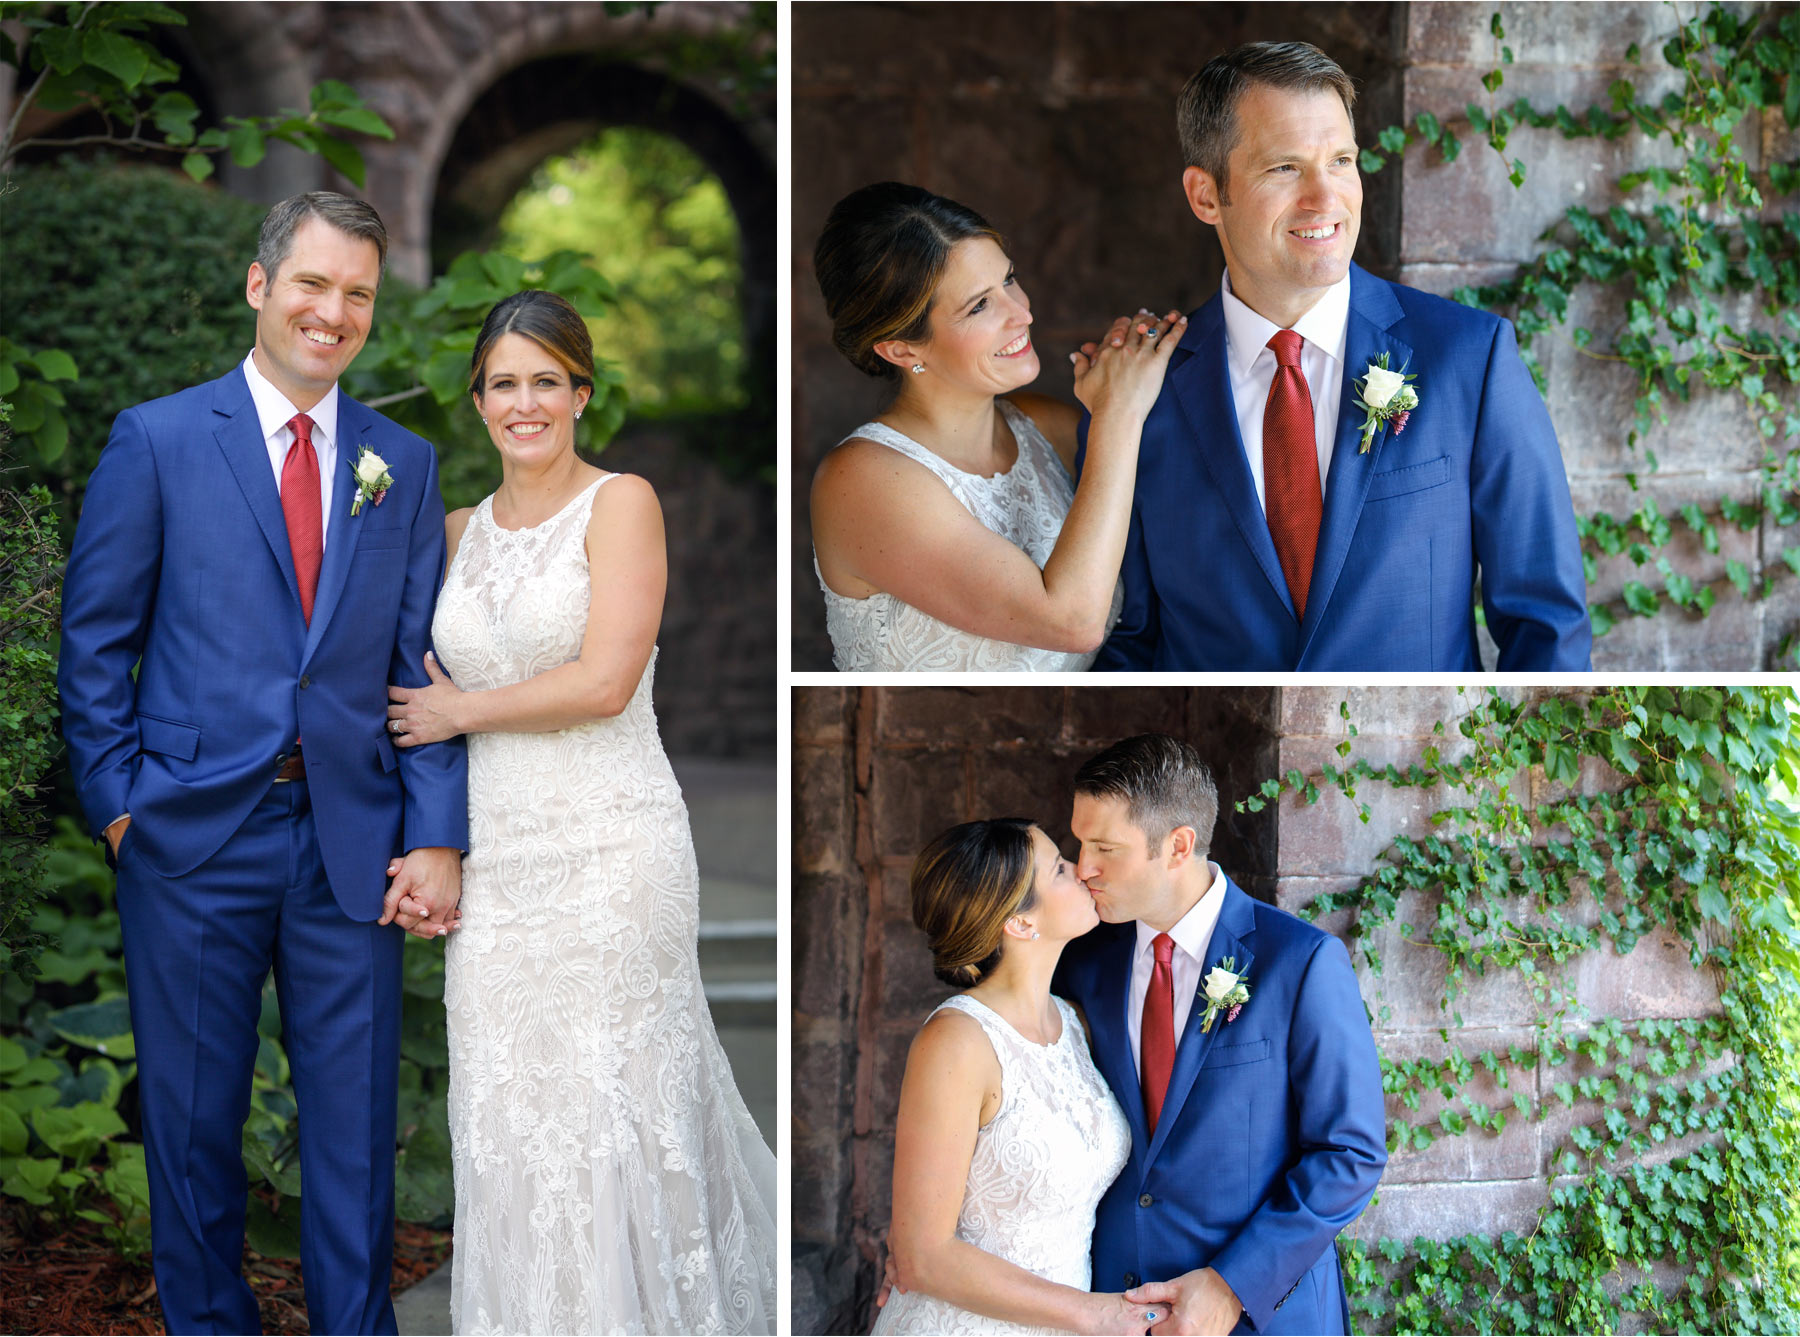 06-Minneapolis-Minnesota-Wedding-Photographer-by-Vick-Photography-Van-Dusen-Mansion-First-Look-Ivy-Megan-and-Ned.jpg